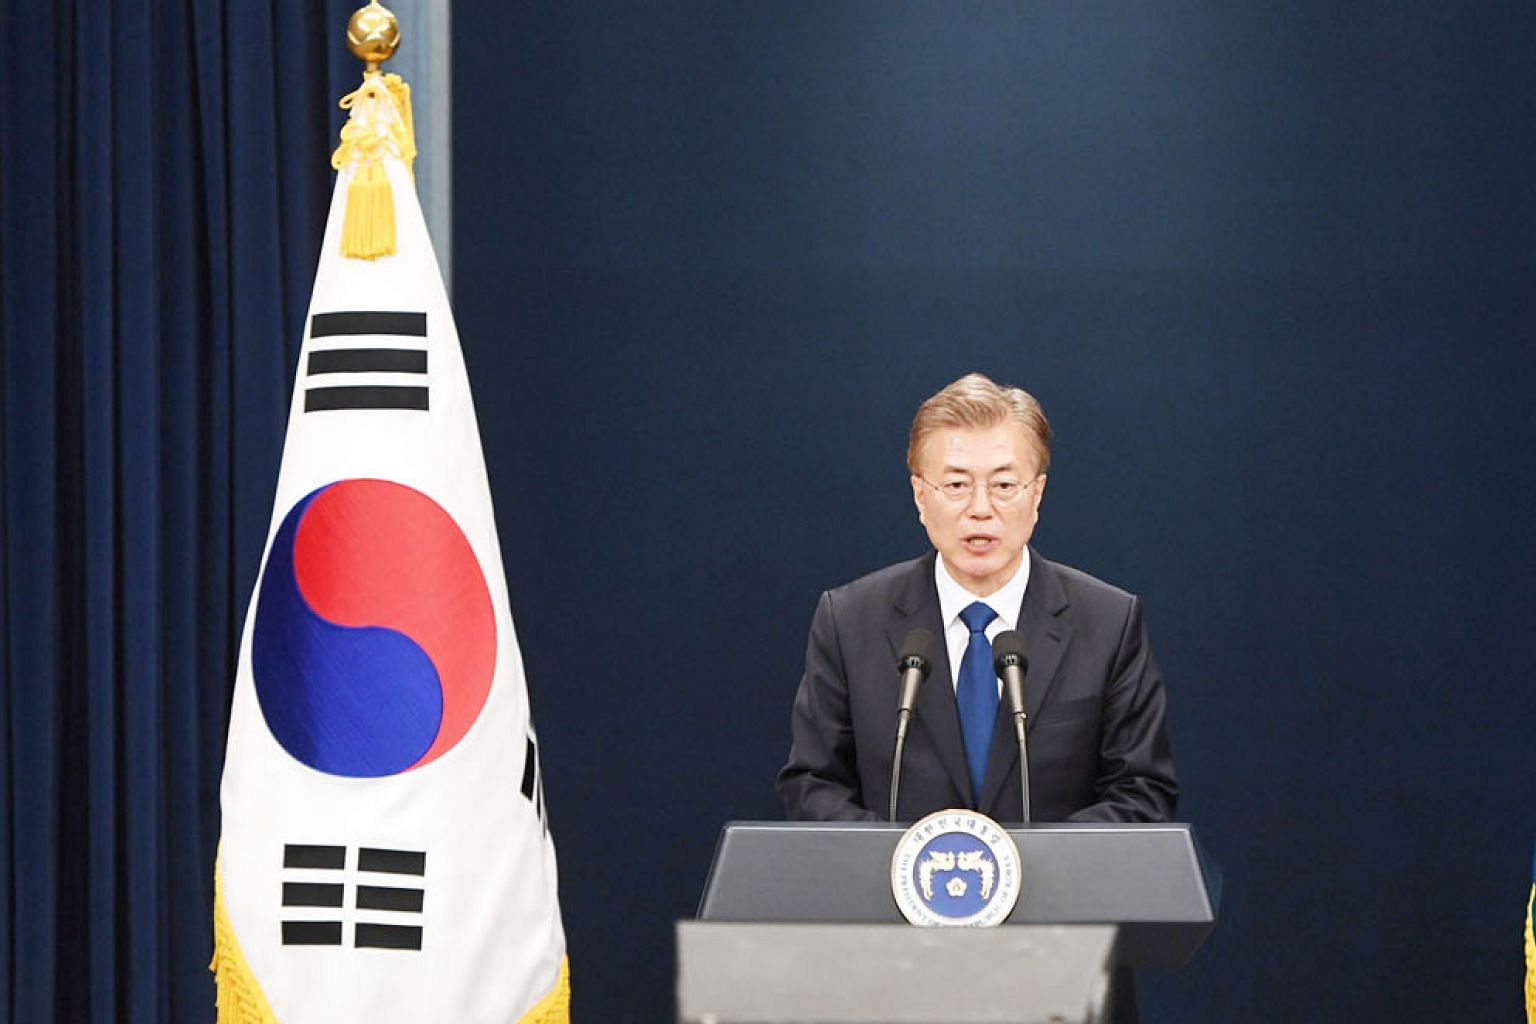 South Korea's President-elect Moon Jae In will take office at a time of heightened tensions with North Korea. In realising his liberal dream of national unification, he will have to keep an eye on geopolitical realities as well.